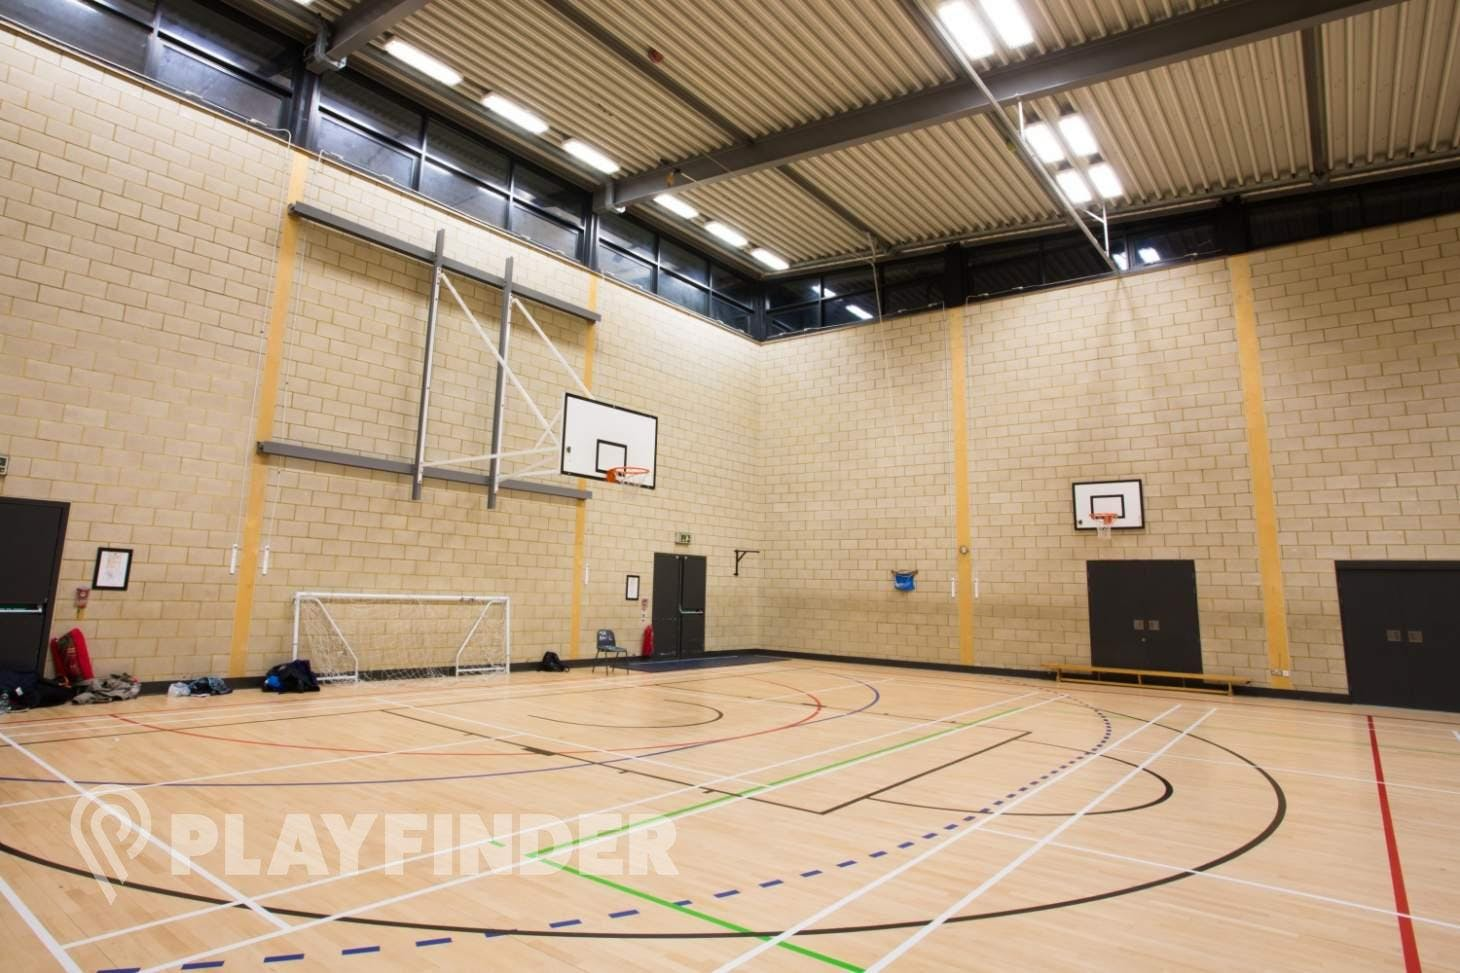 Brentside High School Sports hall space hire